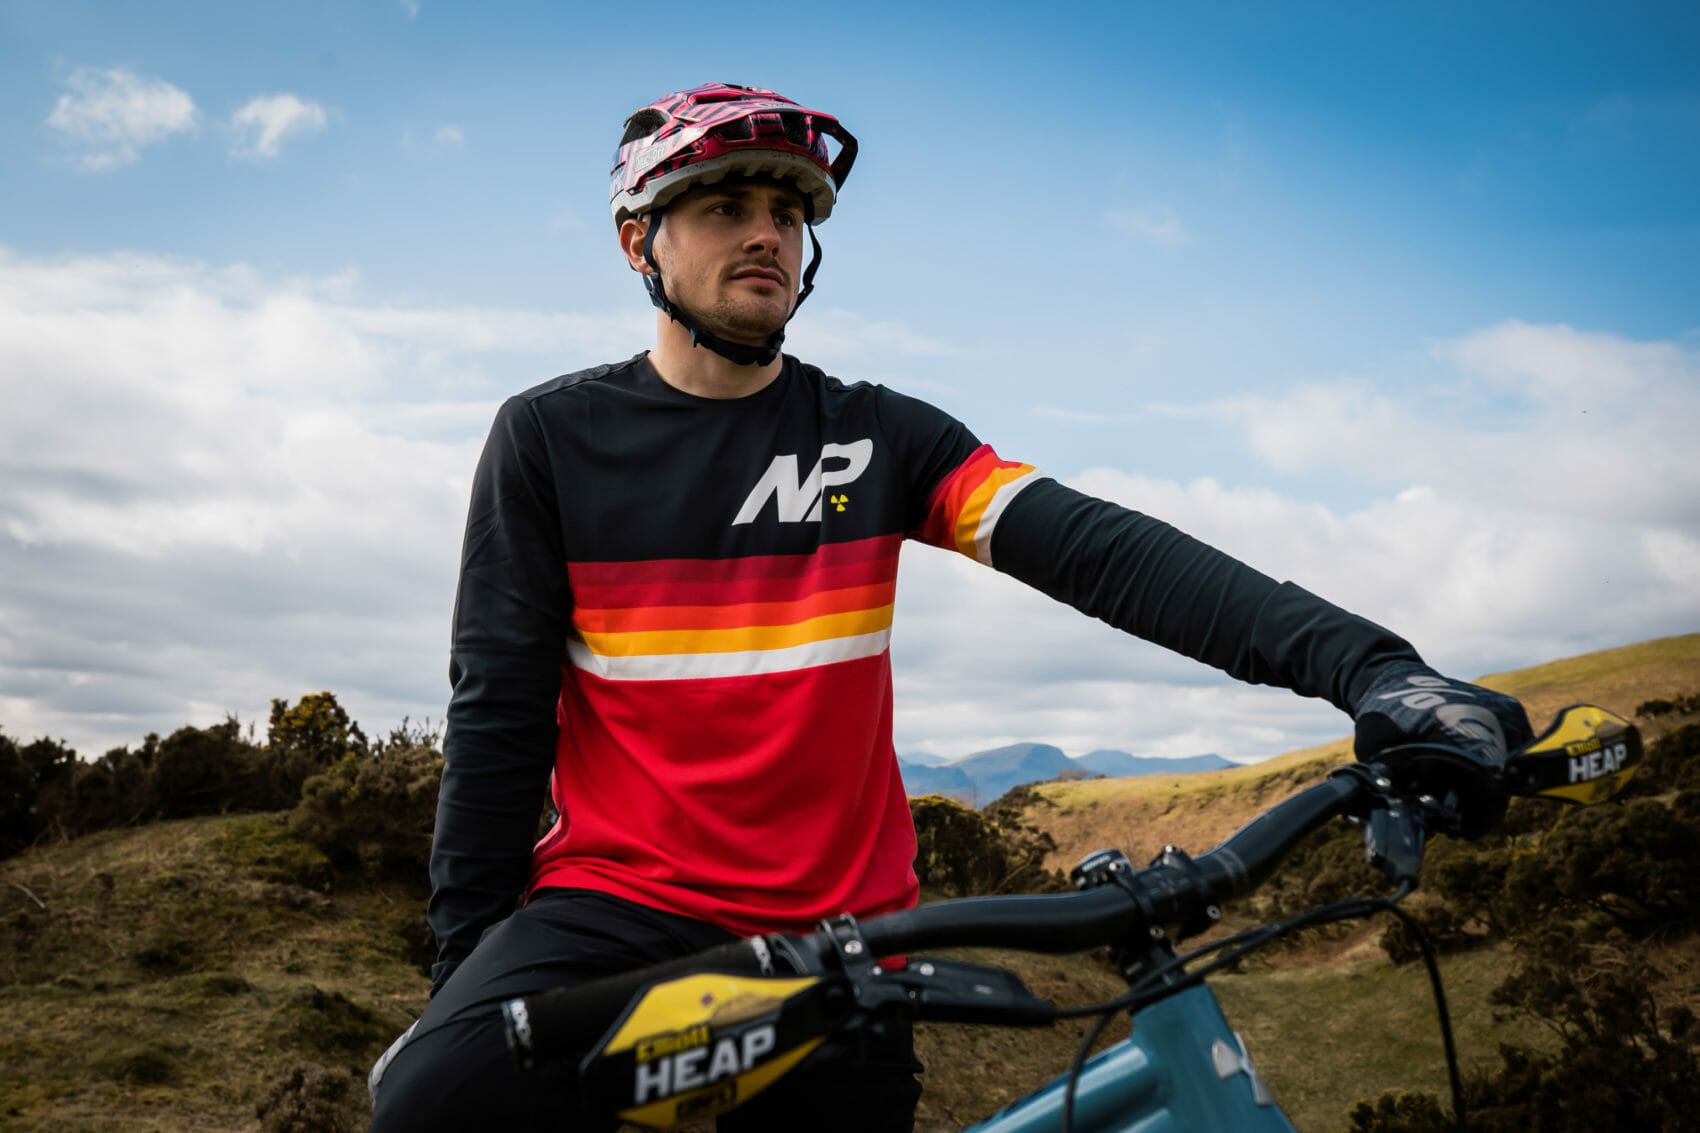 Nukeproof Launch new Ridewear for 2021